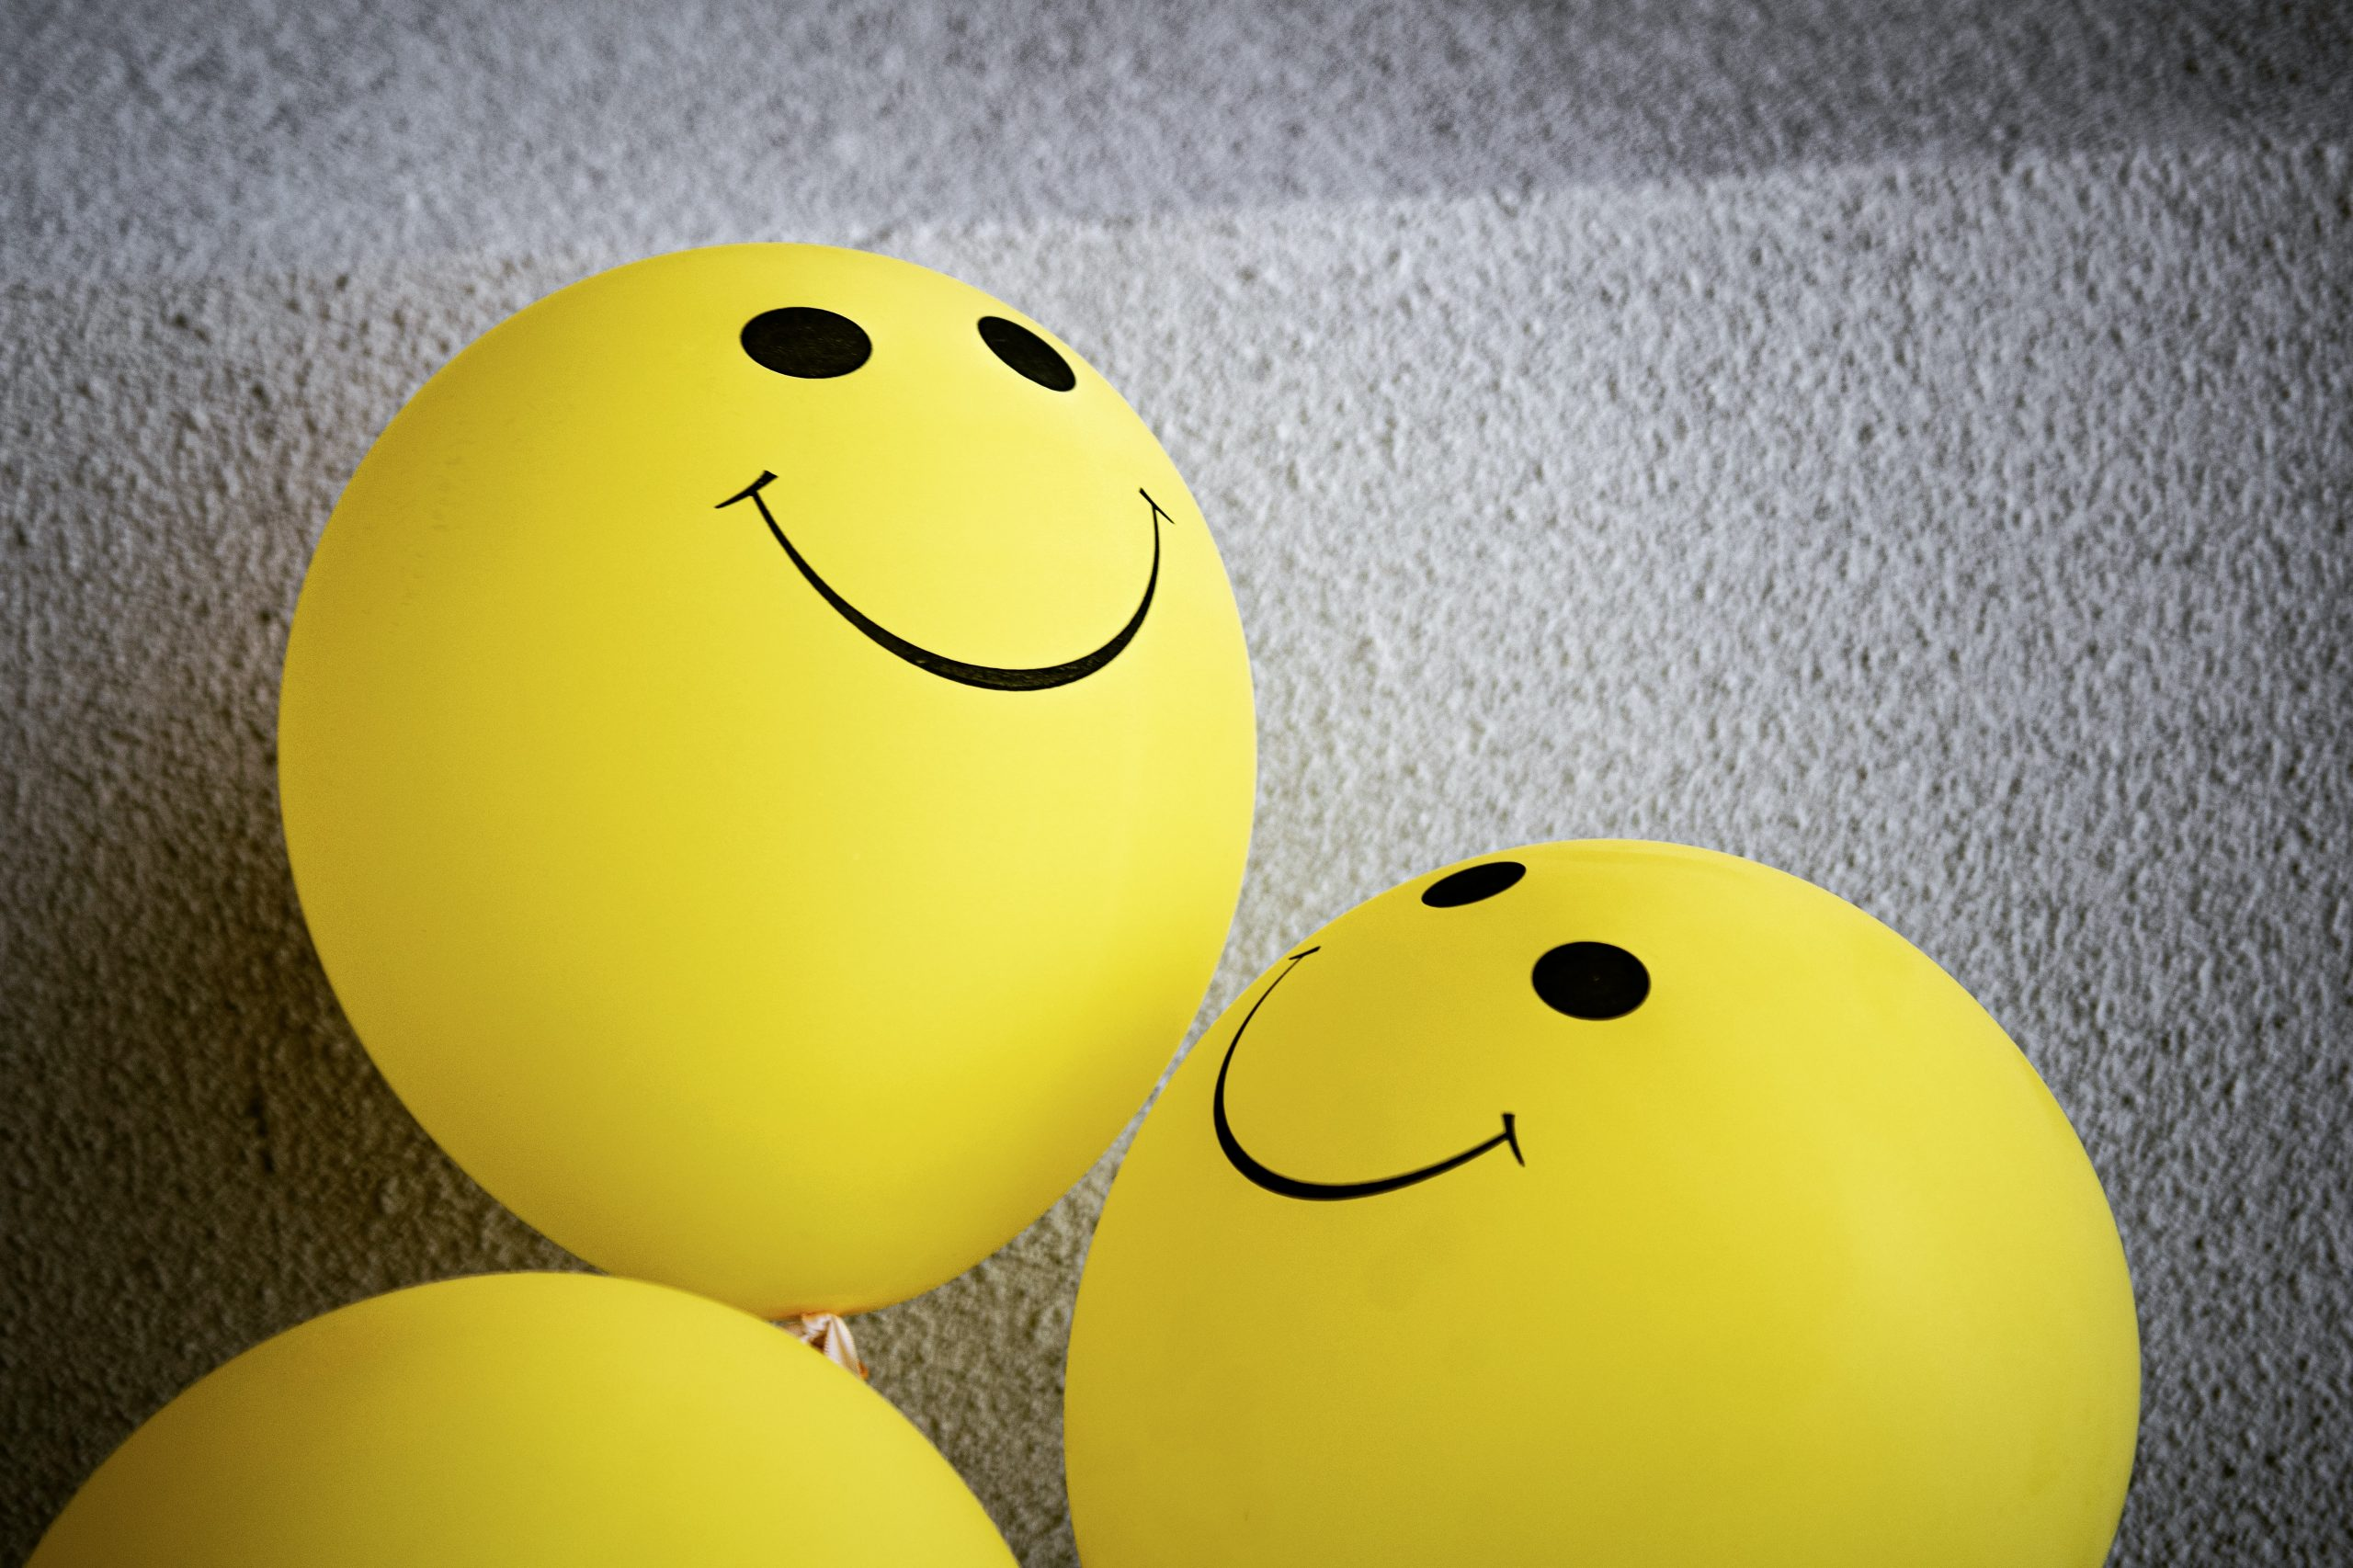 yellow smiley face balloons, be kind